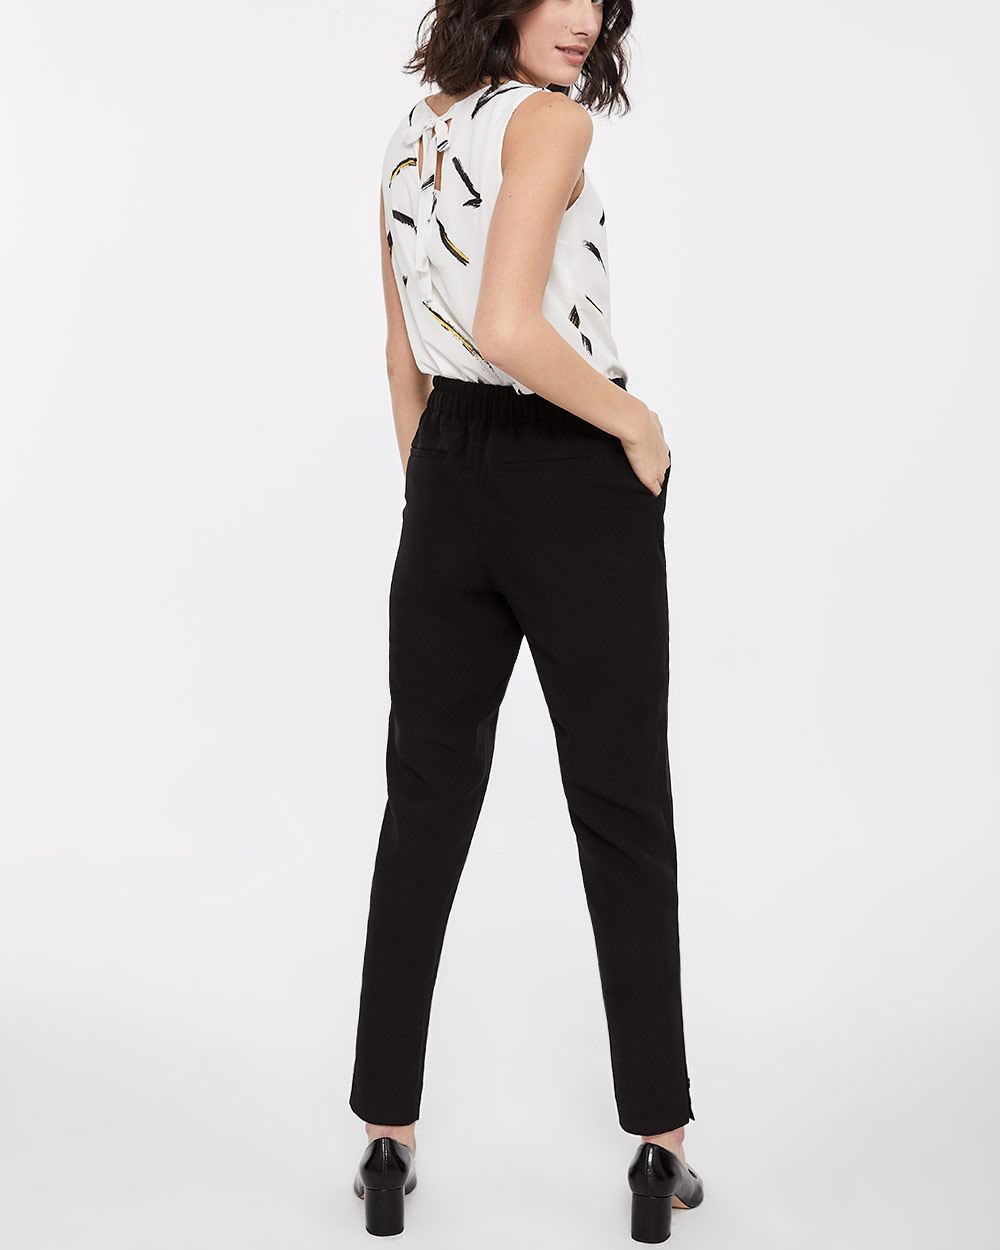 Willow & Thread Buttoned Hem Peg Leg Pants